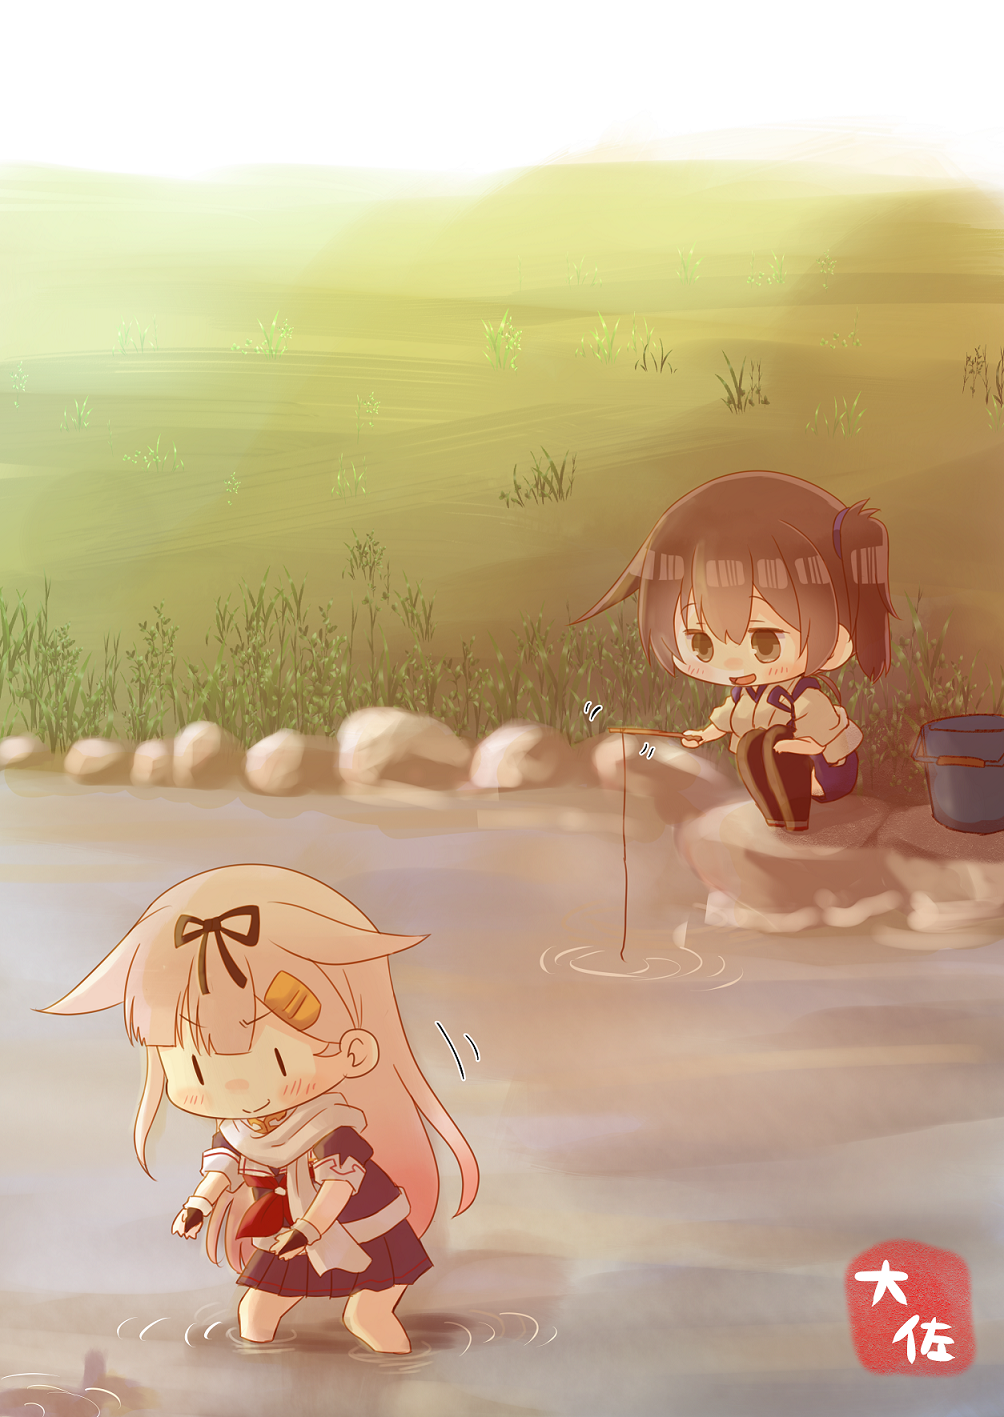 2girls black_gloves black_legwear black_ribbon black_serafuku black_skirt blonde_hair blue_hakama brown_eyes brown_hair bucket chibi fingerless_gloves fishing fishing_rod gloves grass hair_flaps hair_ornament hair_ribbon hairclip hakama hakama_skirt highres japanese_clothes kaga_(kantai_collection) kantai_collection long_hair messy_hair multiple_girls neckerchief outdoors pleated_skirt red_neckwear remodel_(kantai_collection) ribbon river scarf school_uniform serafuku side_ponytail skirt taisa_(kari) tasuki thigh-highs wading white_scarf yuudachi_(kantai_collection) |_|